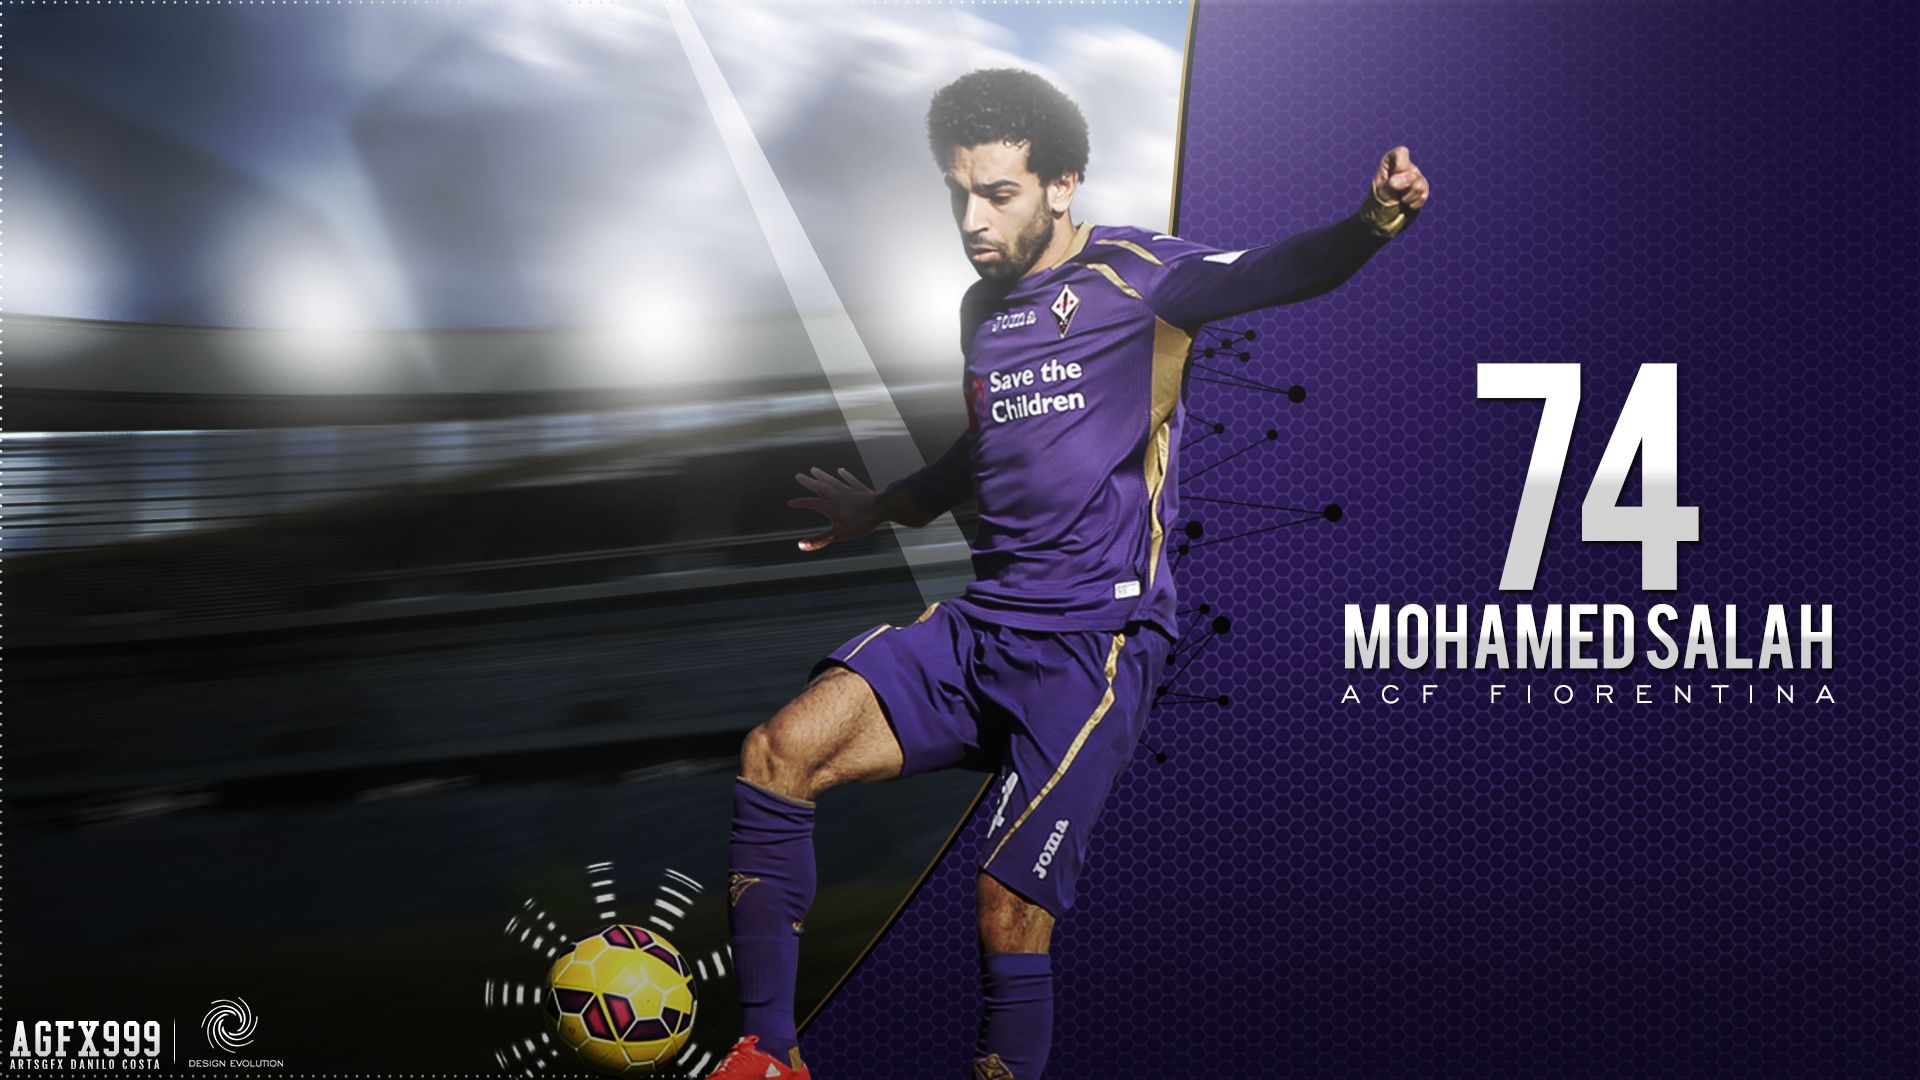 Mohamed Salah Fiorentina Wallpaper